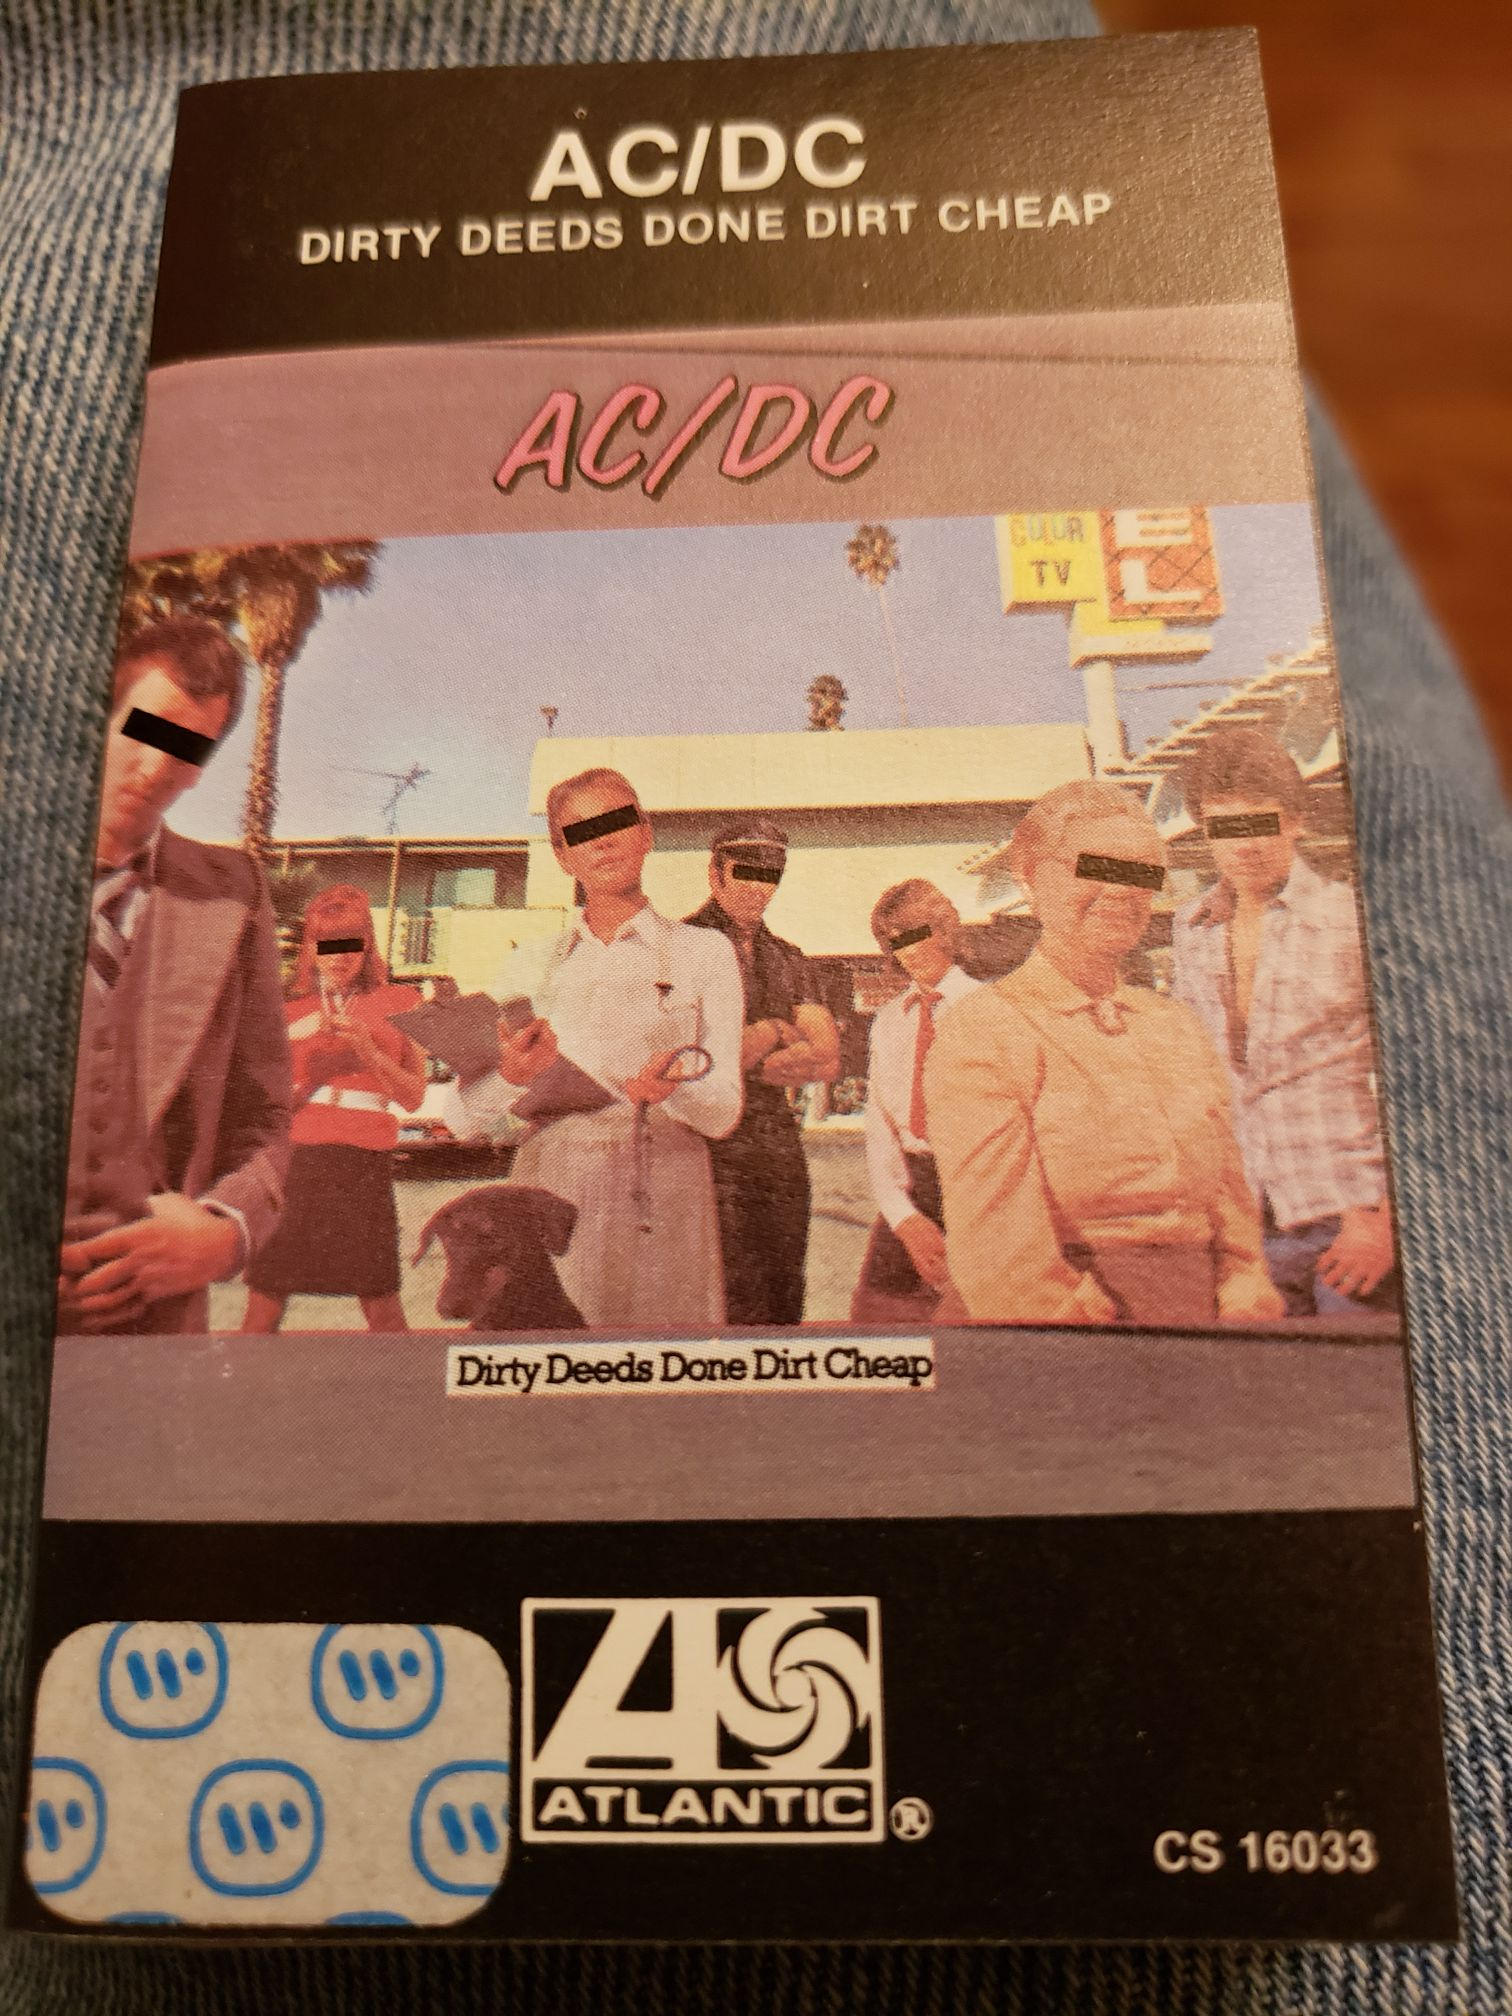 Dirty Deeds Done Dirt Cheap - Cassette cover